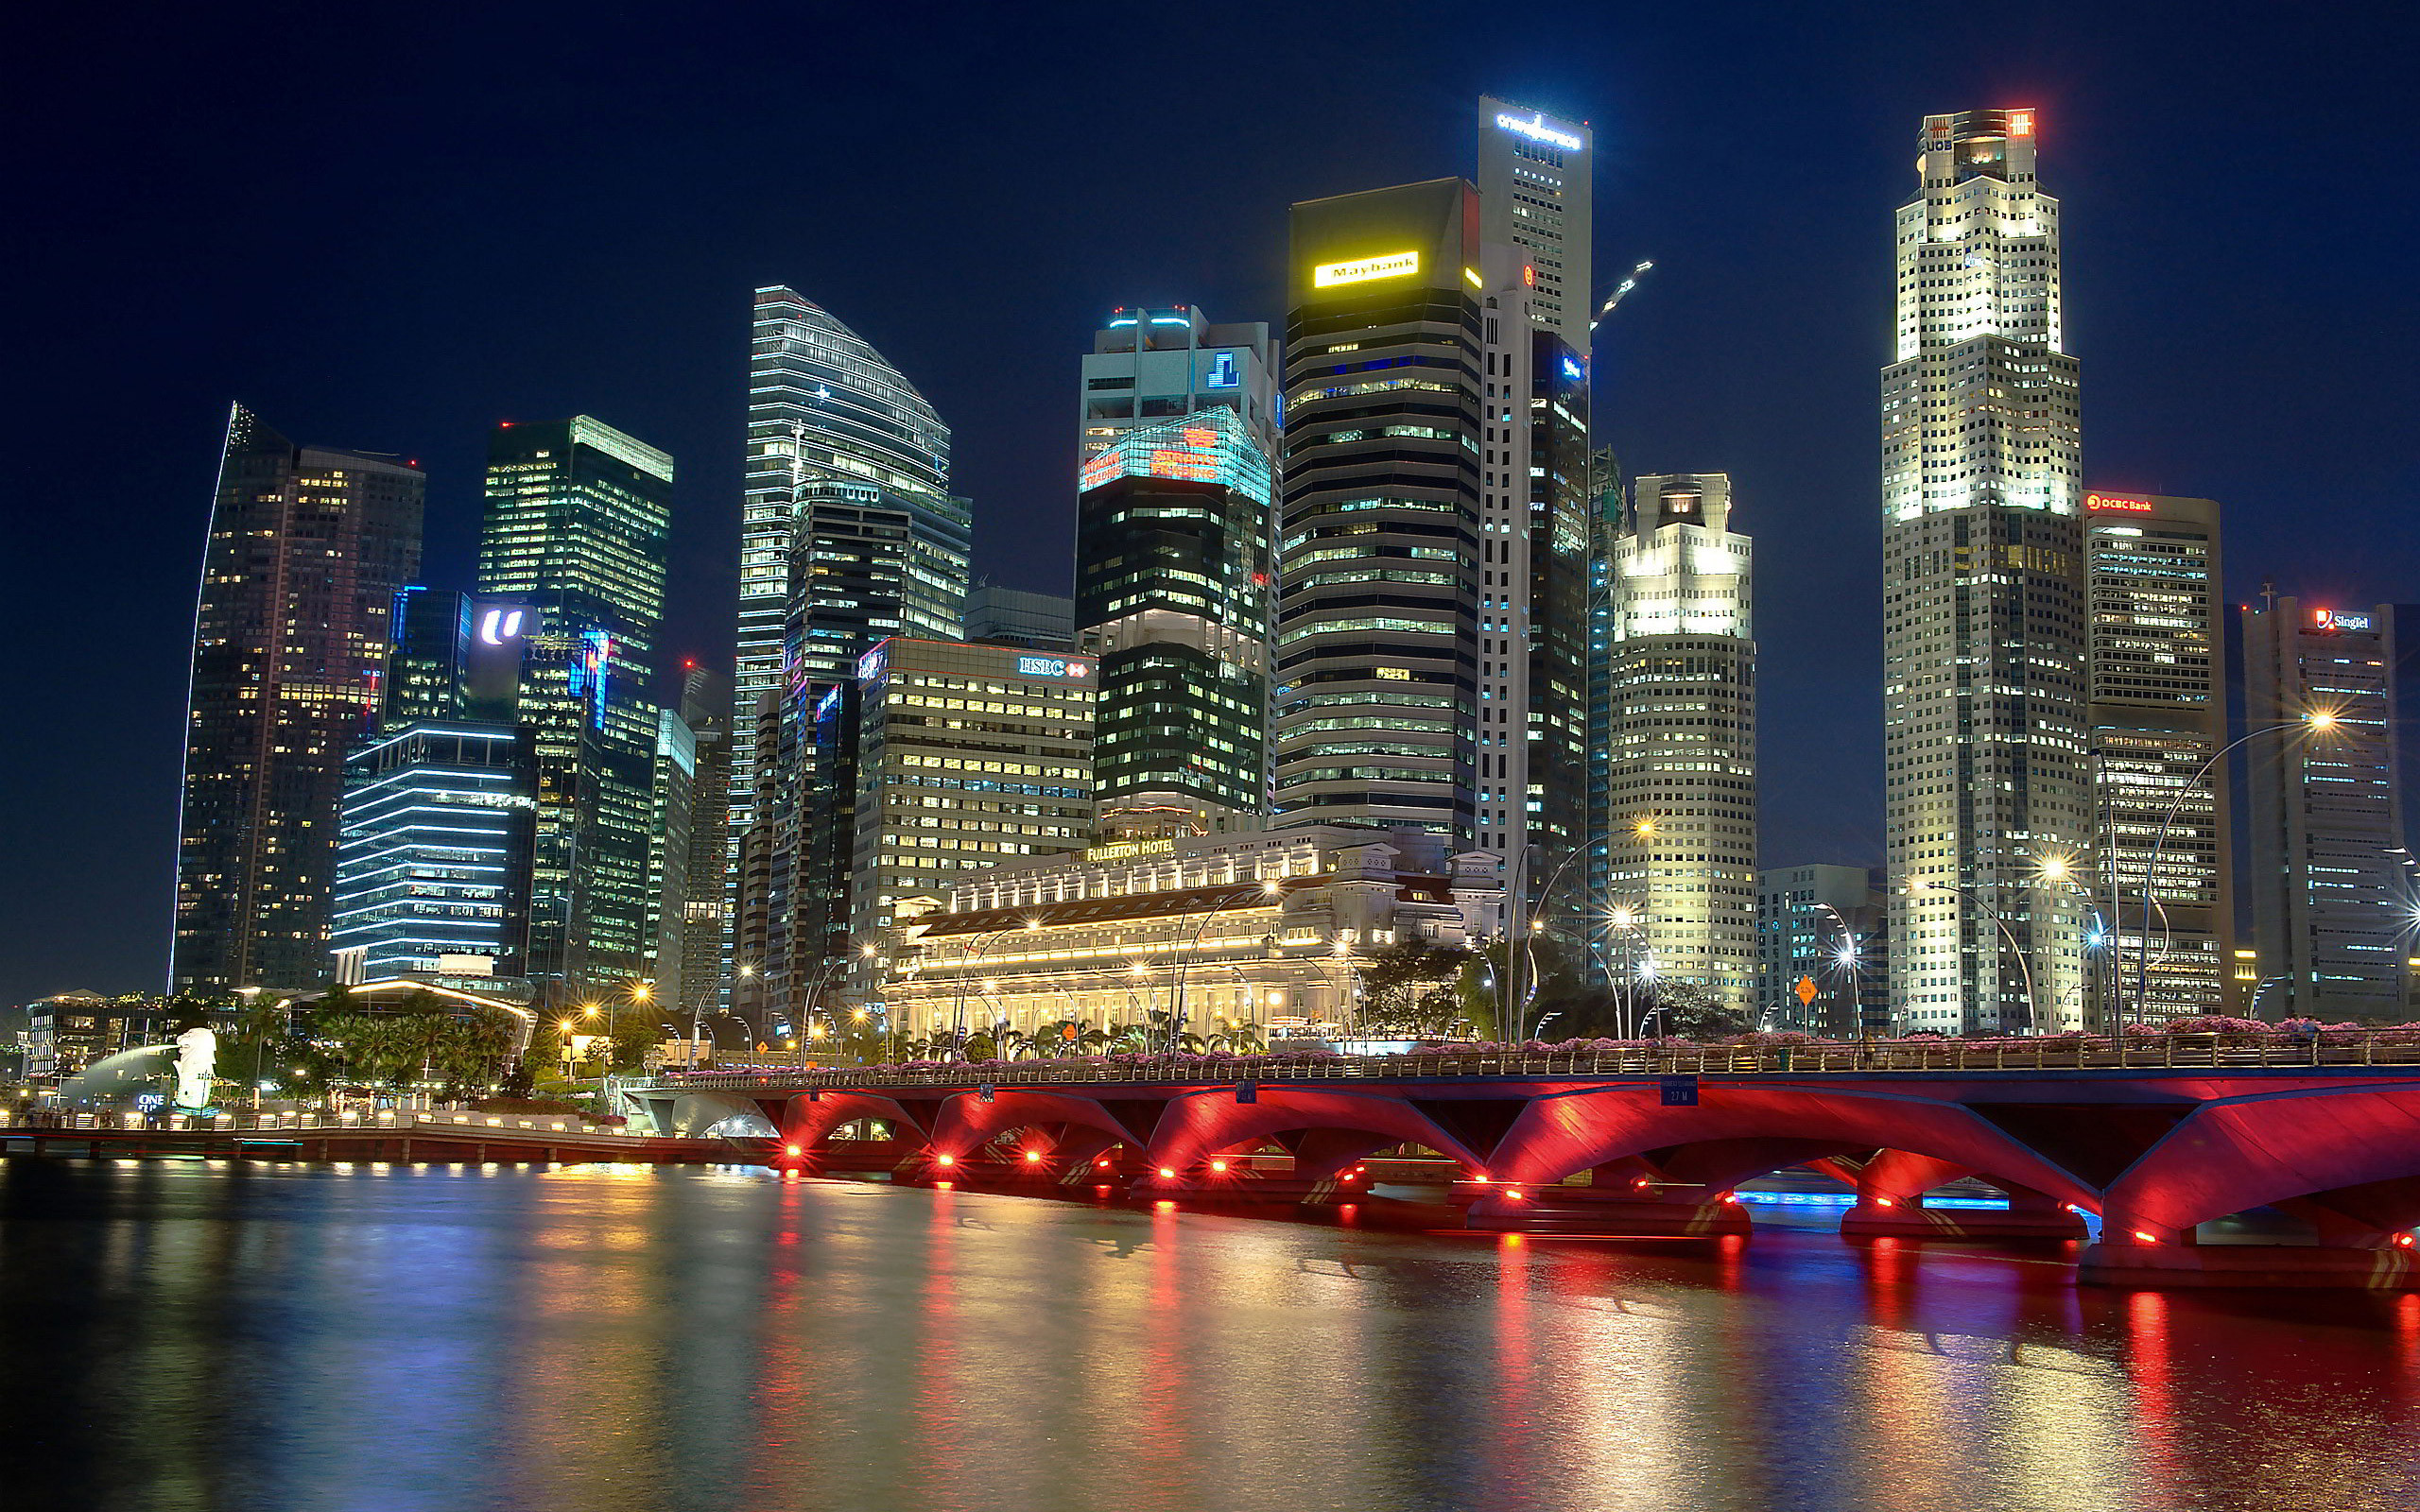 singapore-wallpapers-30822-31547-hd-wallpapers